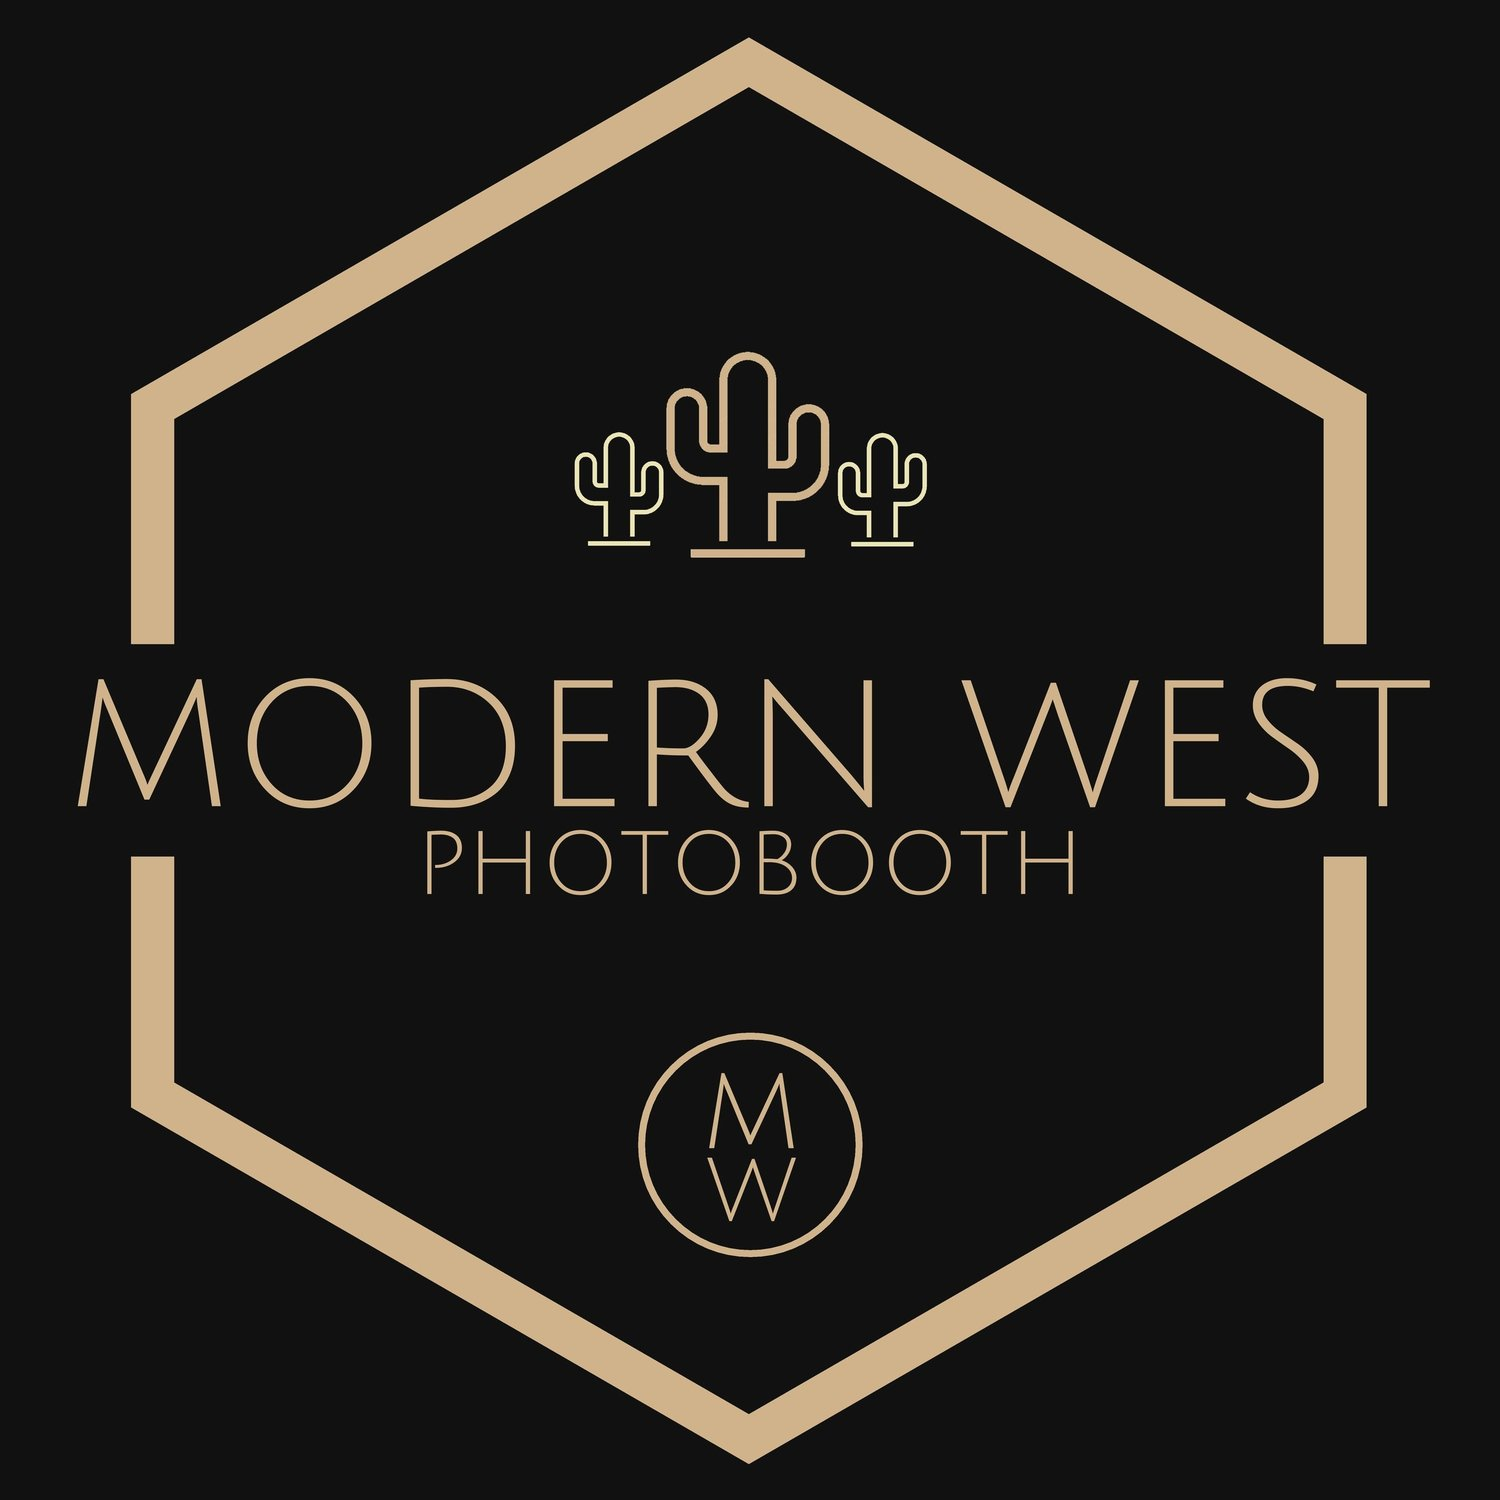 Modern West Photobooth: Custom & Personal - A High-Quality, Open-Air Photo Booth